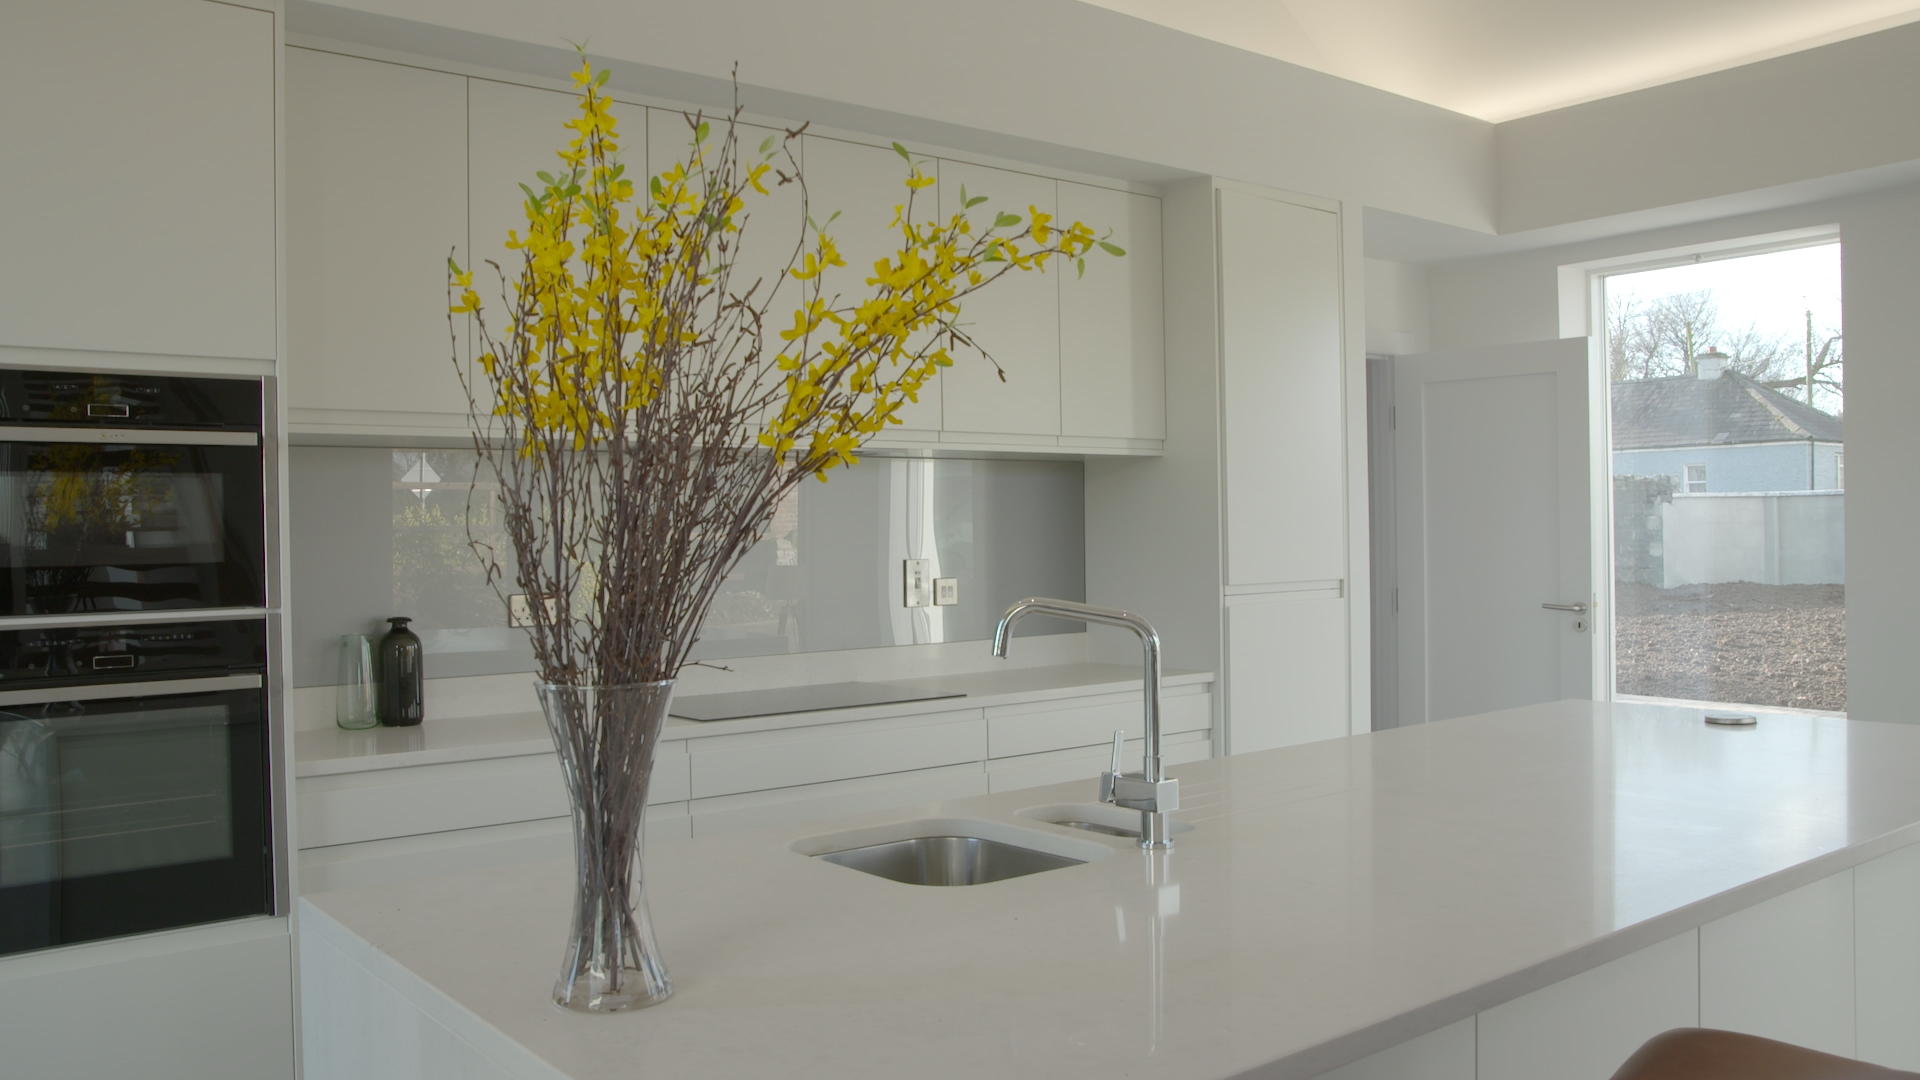 TX3 RTI10 Moate AFTER Kitchen 2.jpg